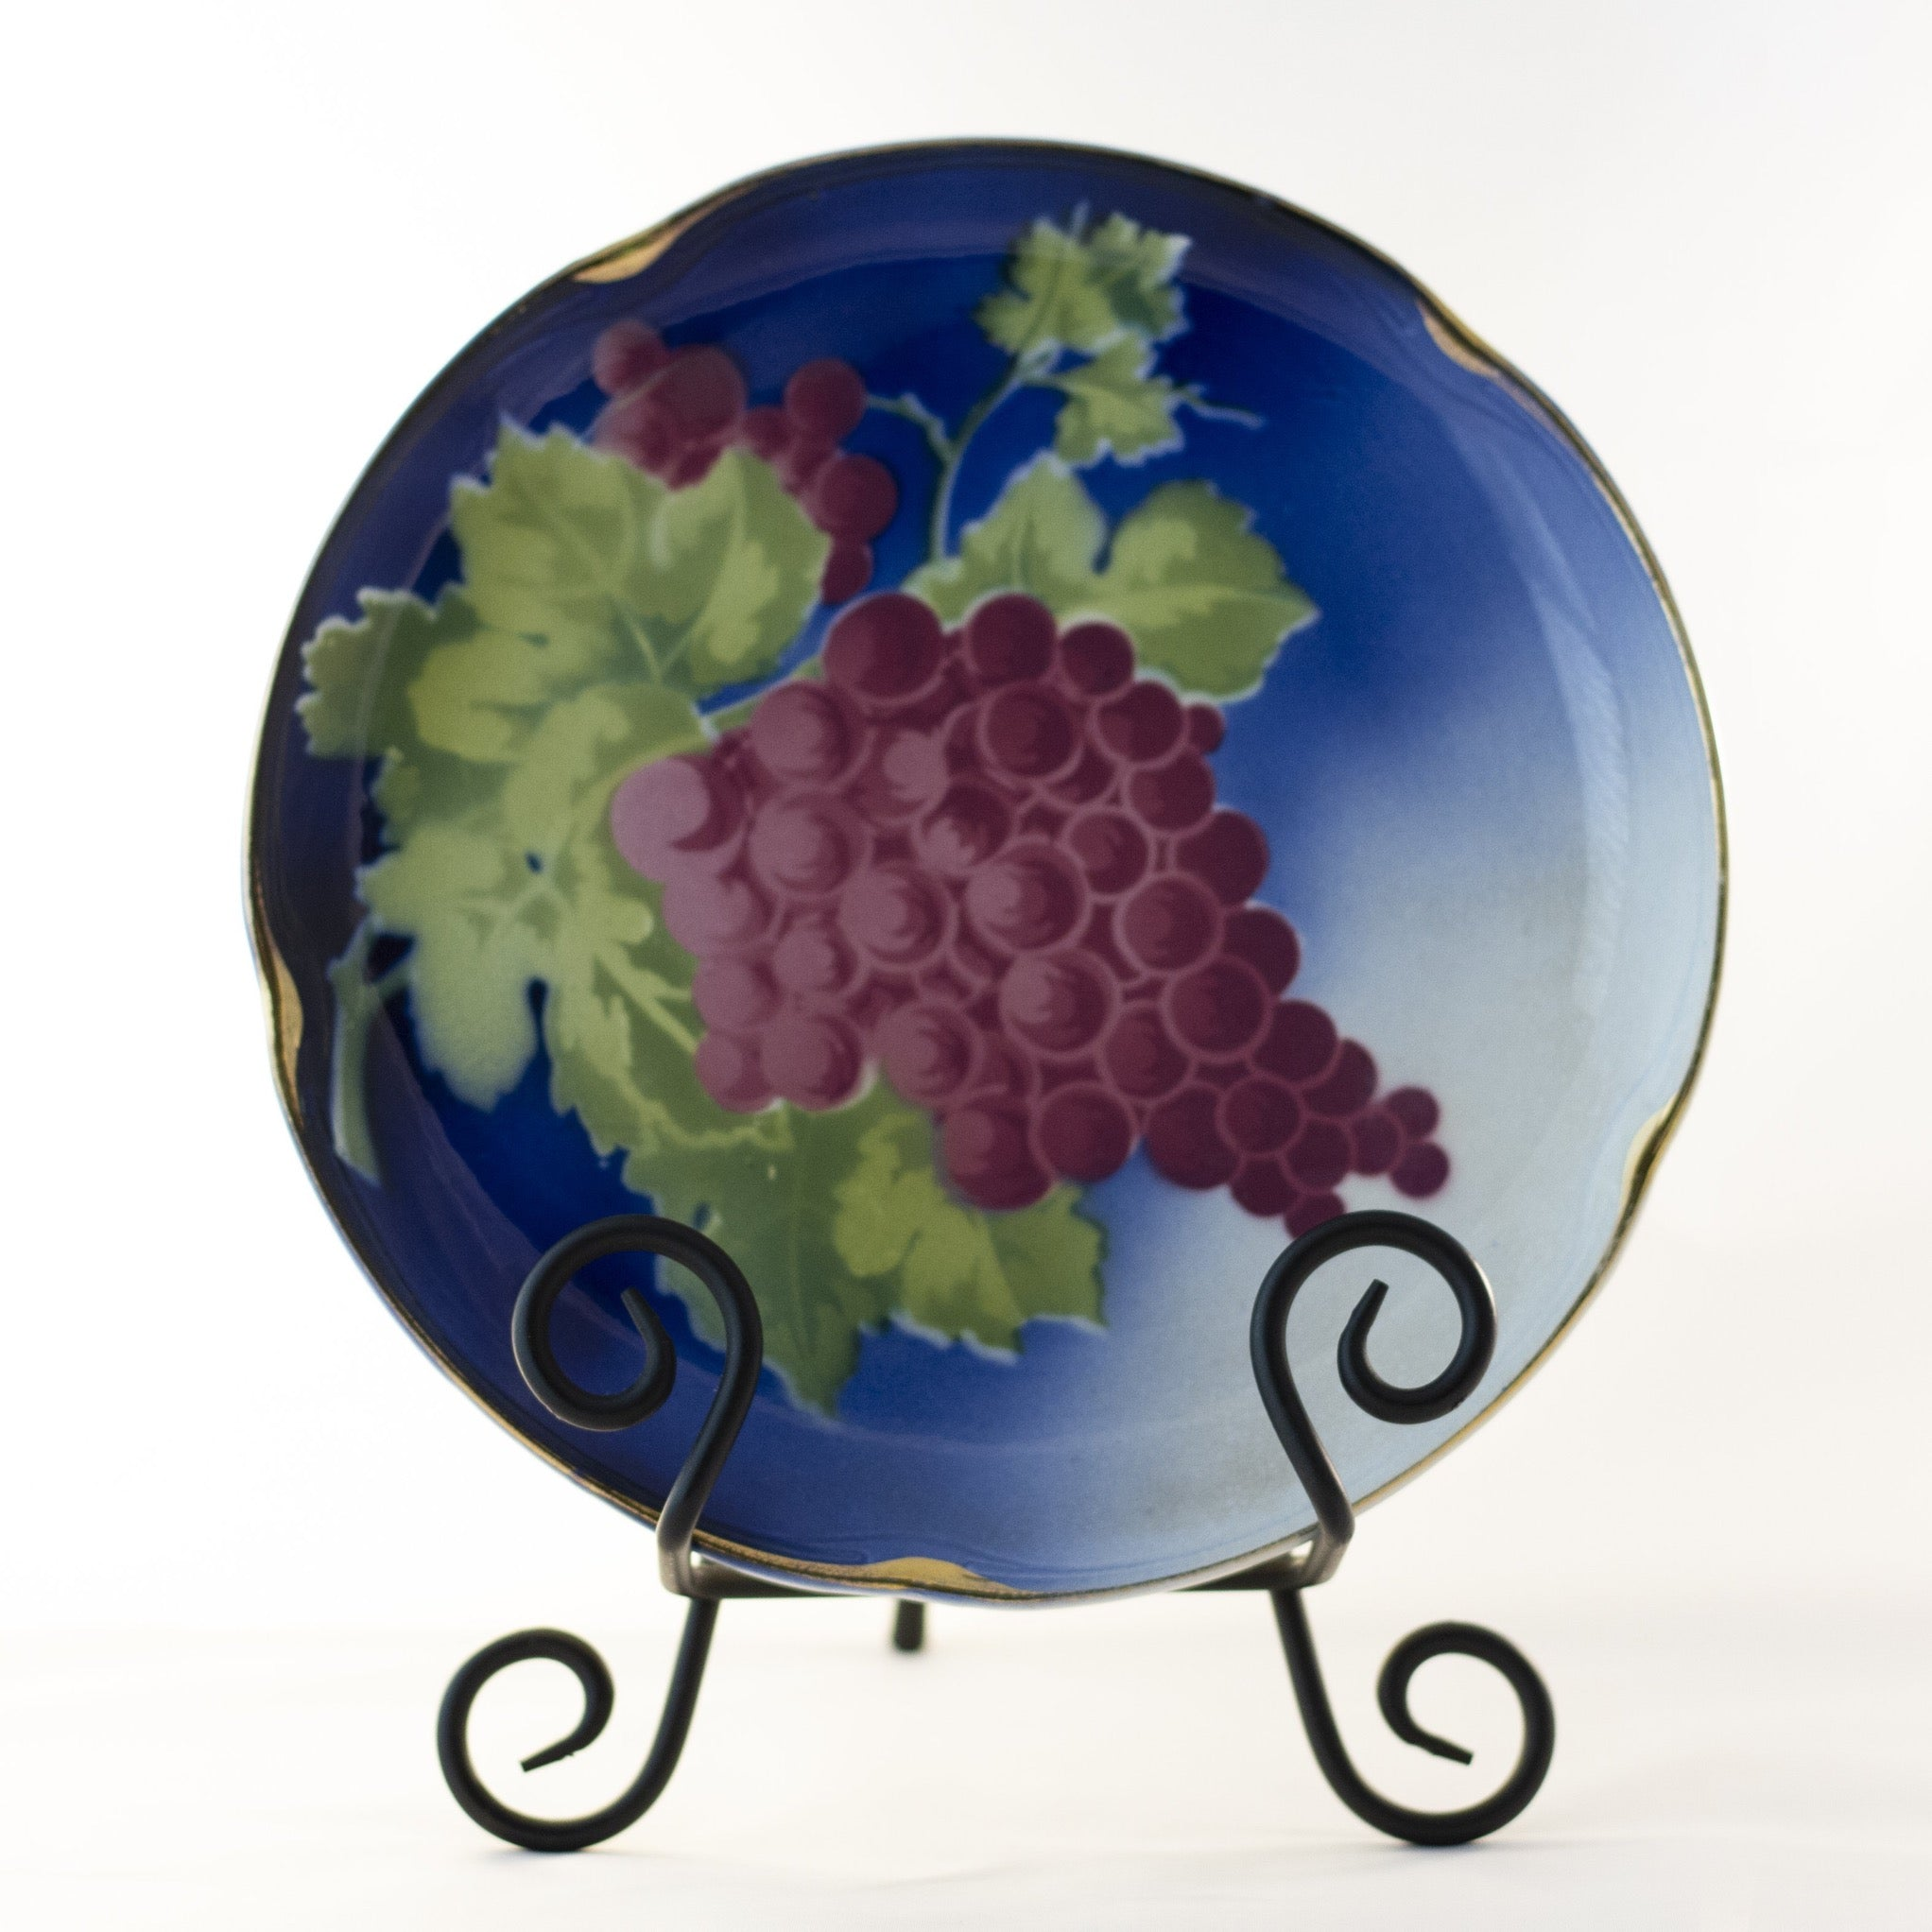 "K & G LUNÉVILLE FRENCH FAIENCE PLATE HAND PAINTED GRAPES 8 ½"" Gold Gilt Rim Circa 1900"